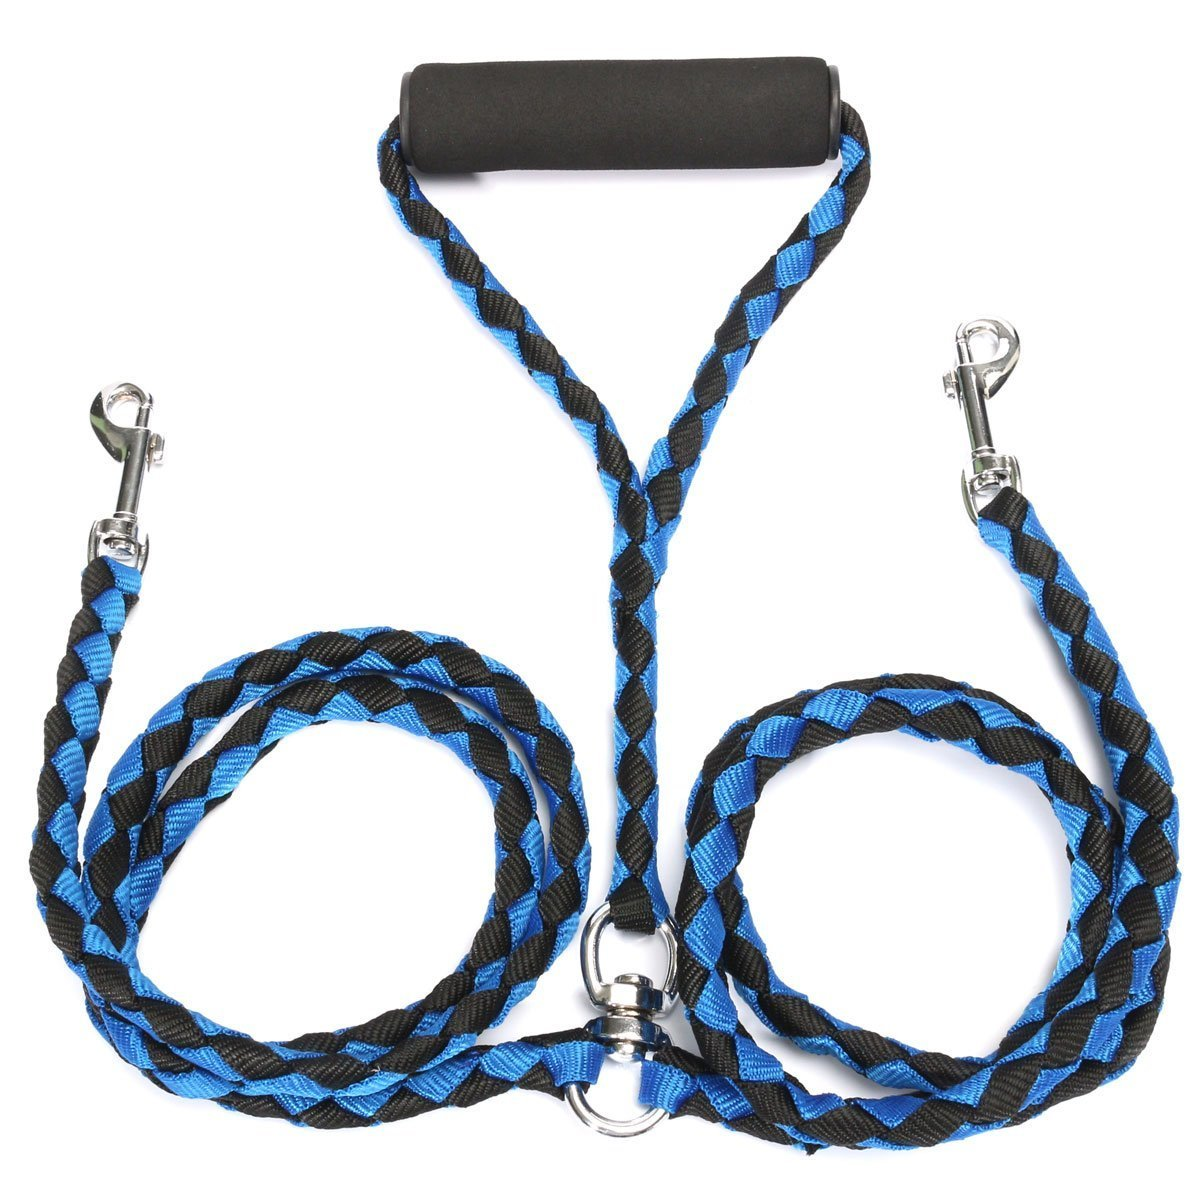 Double Dog Leads for Walking 2 Dogs, No Tangle Dual Dog Lead with Soft Foam Handle for Walking and Training Large/Medium/Small Dogs (black/blue)